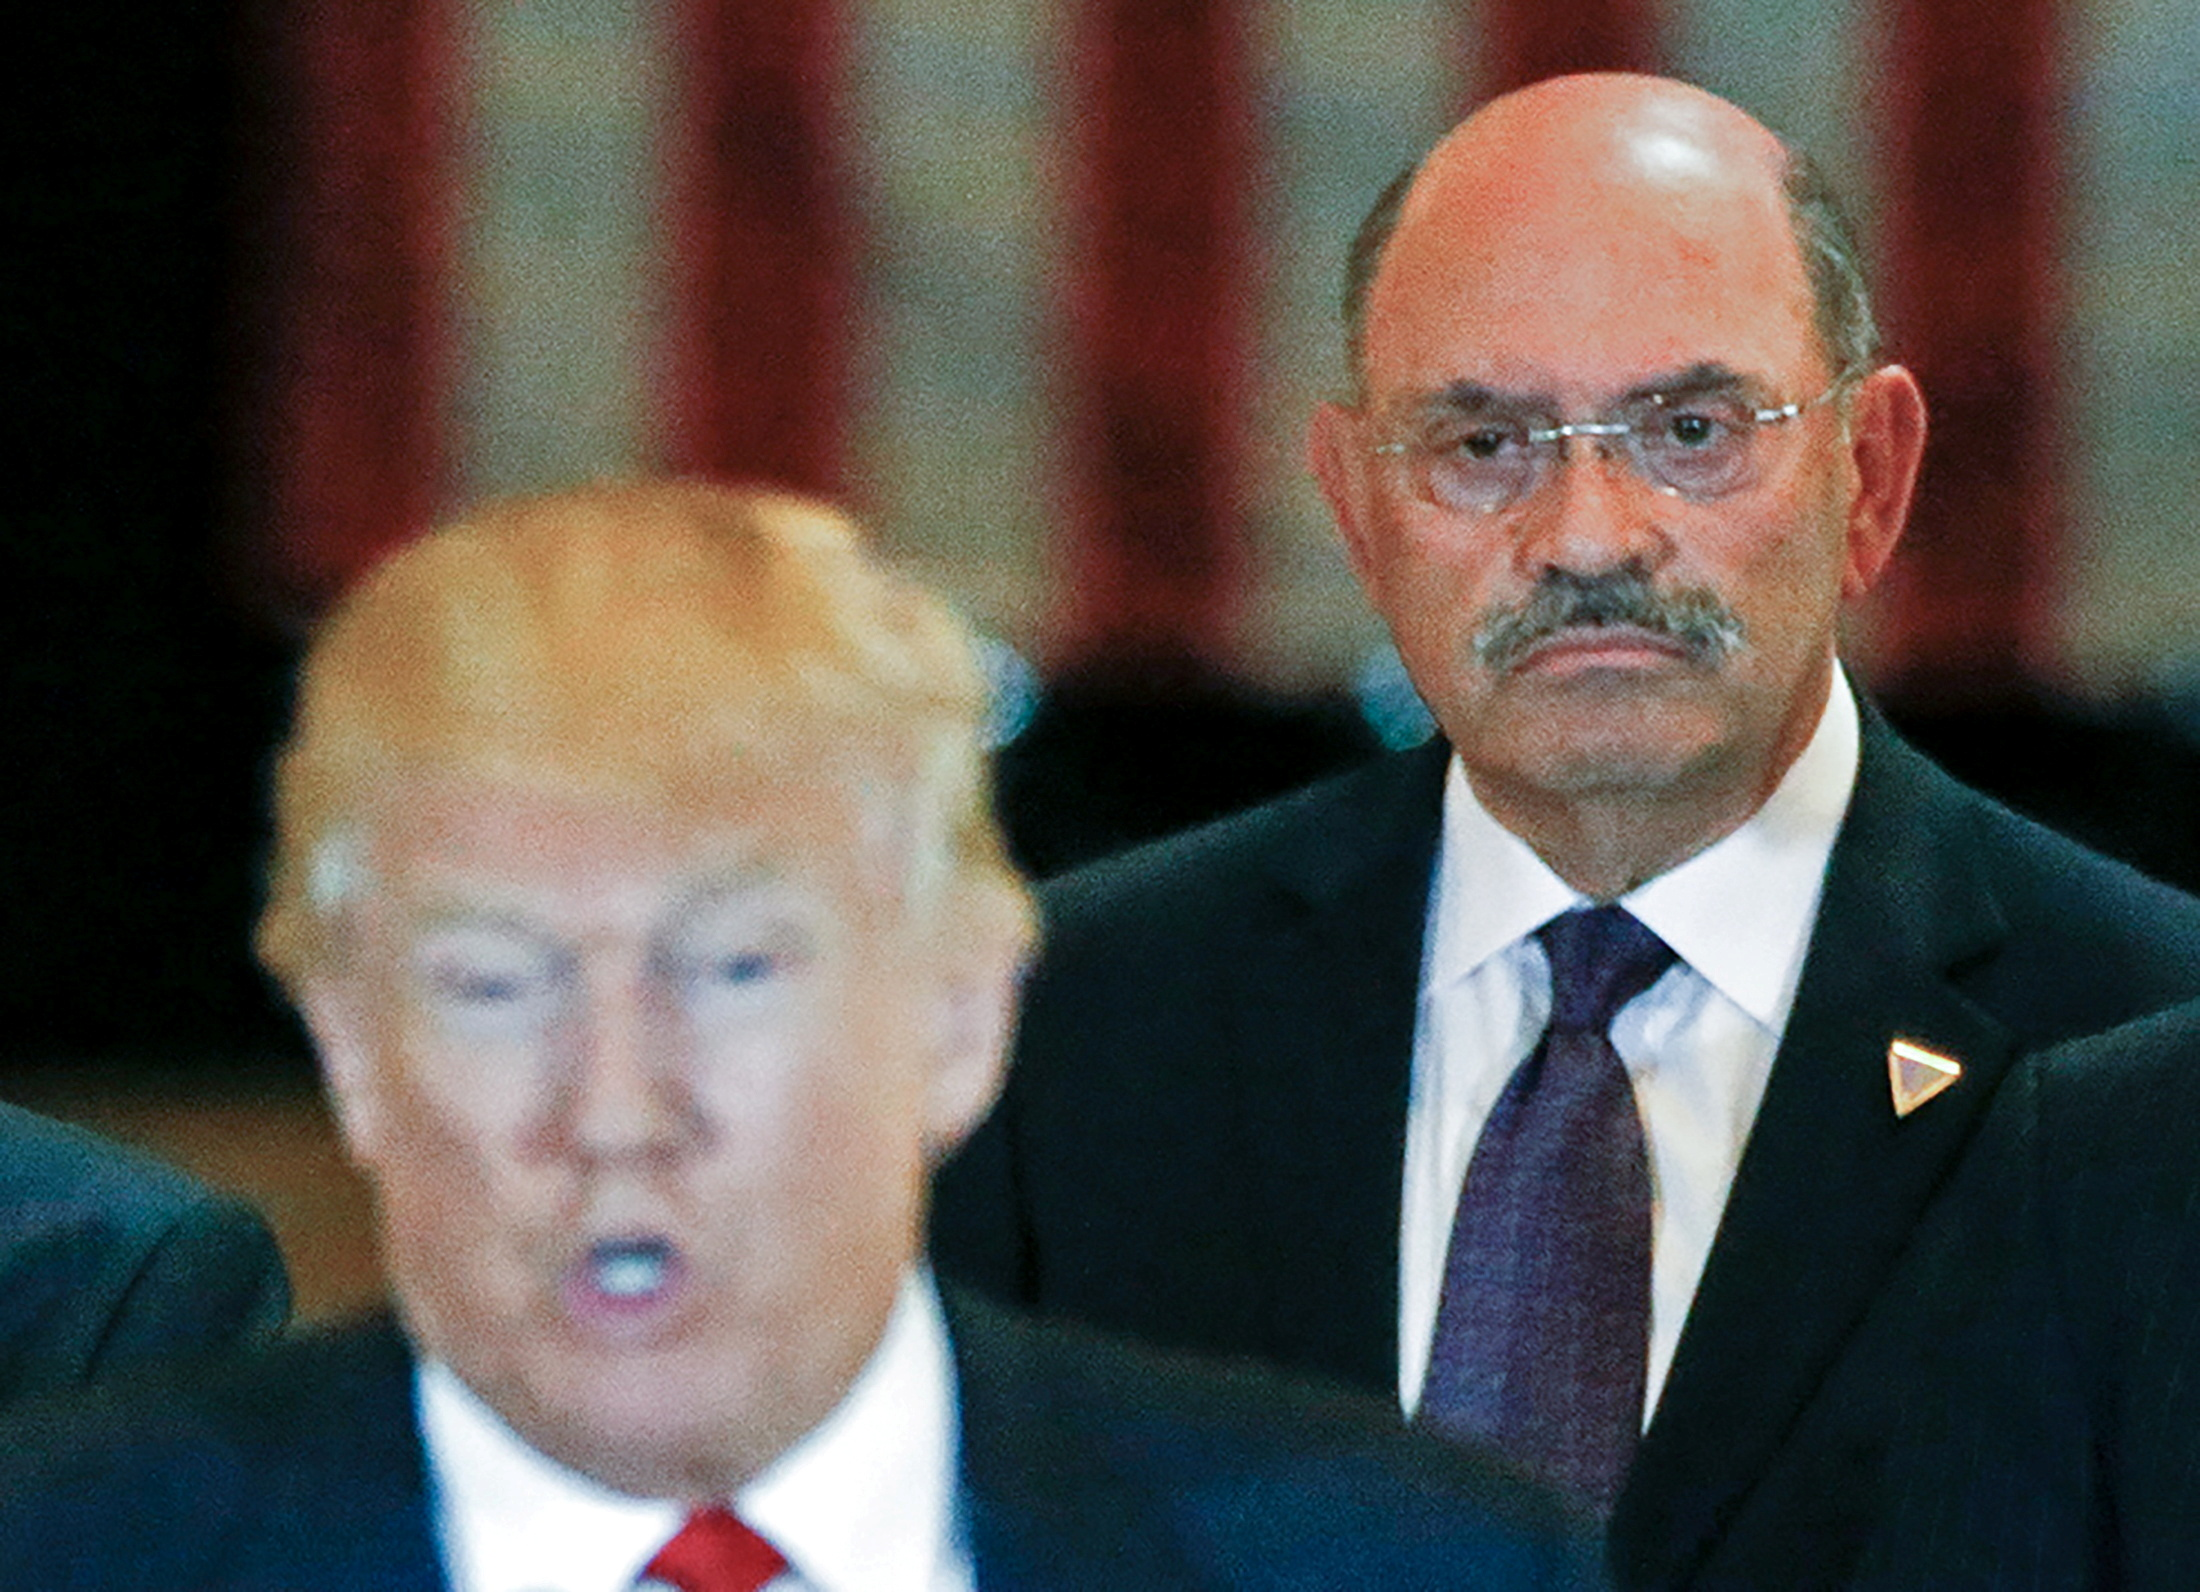 Trump Organization chief financial officer Allen Weisselberg looks on as then-U.S. Republican presidential candidate Donald Trump speaks during a news conference at Trump Tower in Manhattan, New York, U.S., May 31, 2016. REUTERS/Carlo Allegri/File Photo